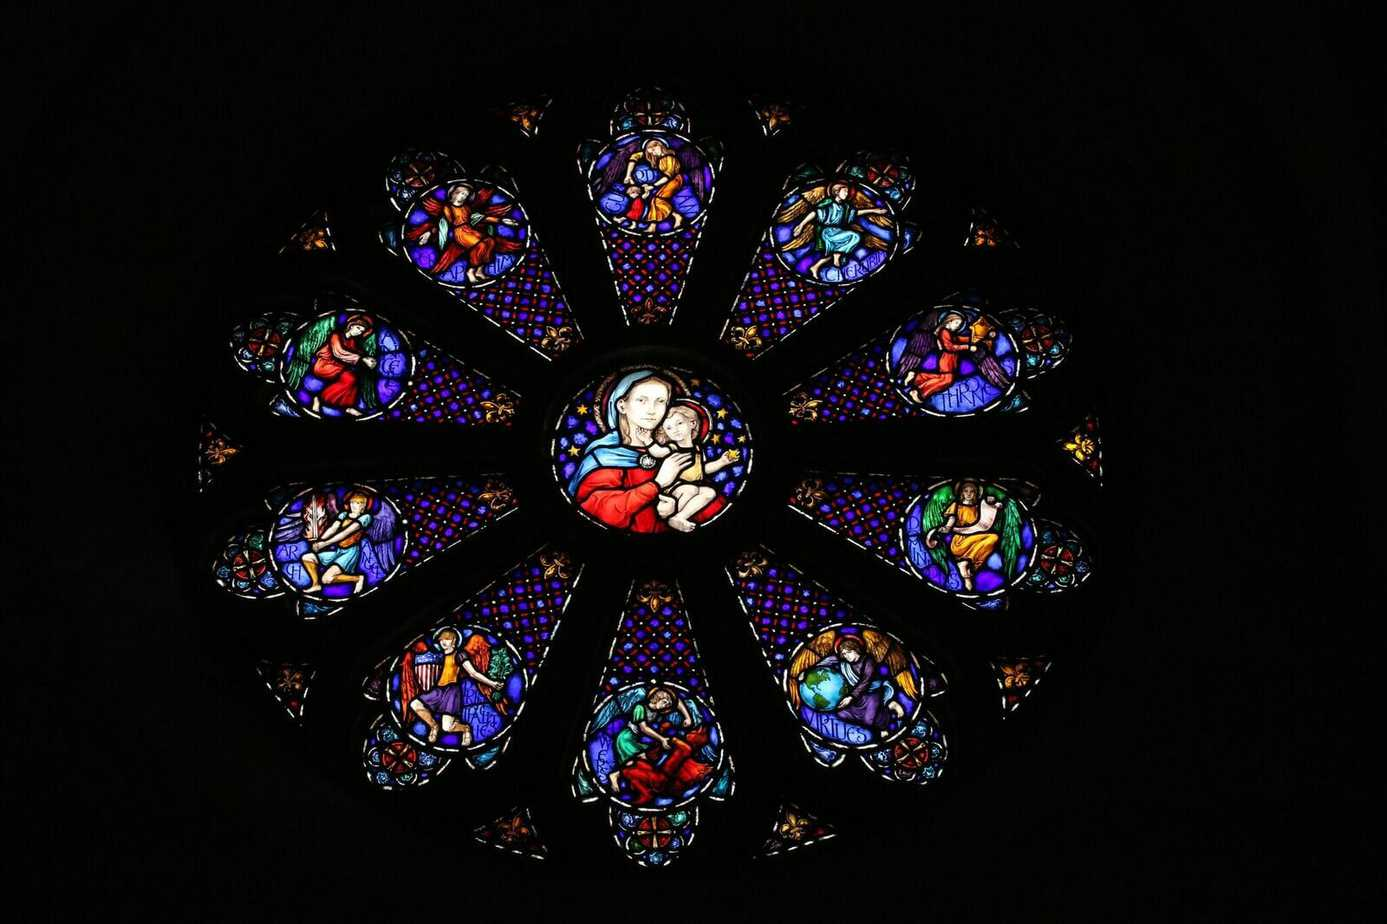 Stained glass window in the Church of St. Jude Fredericksburg, VA